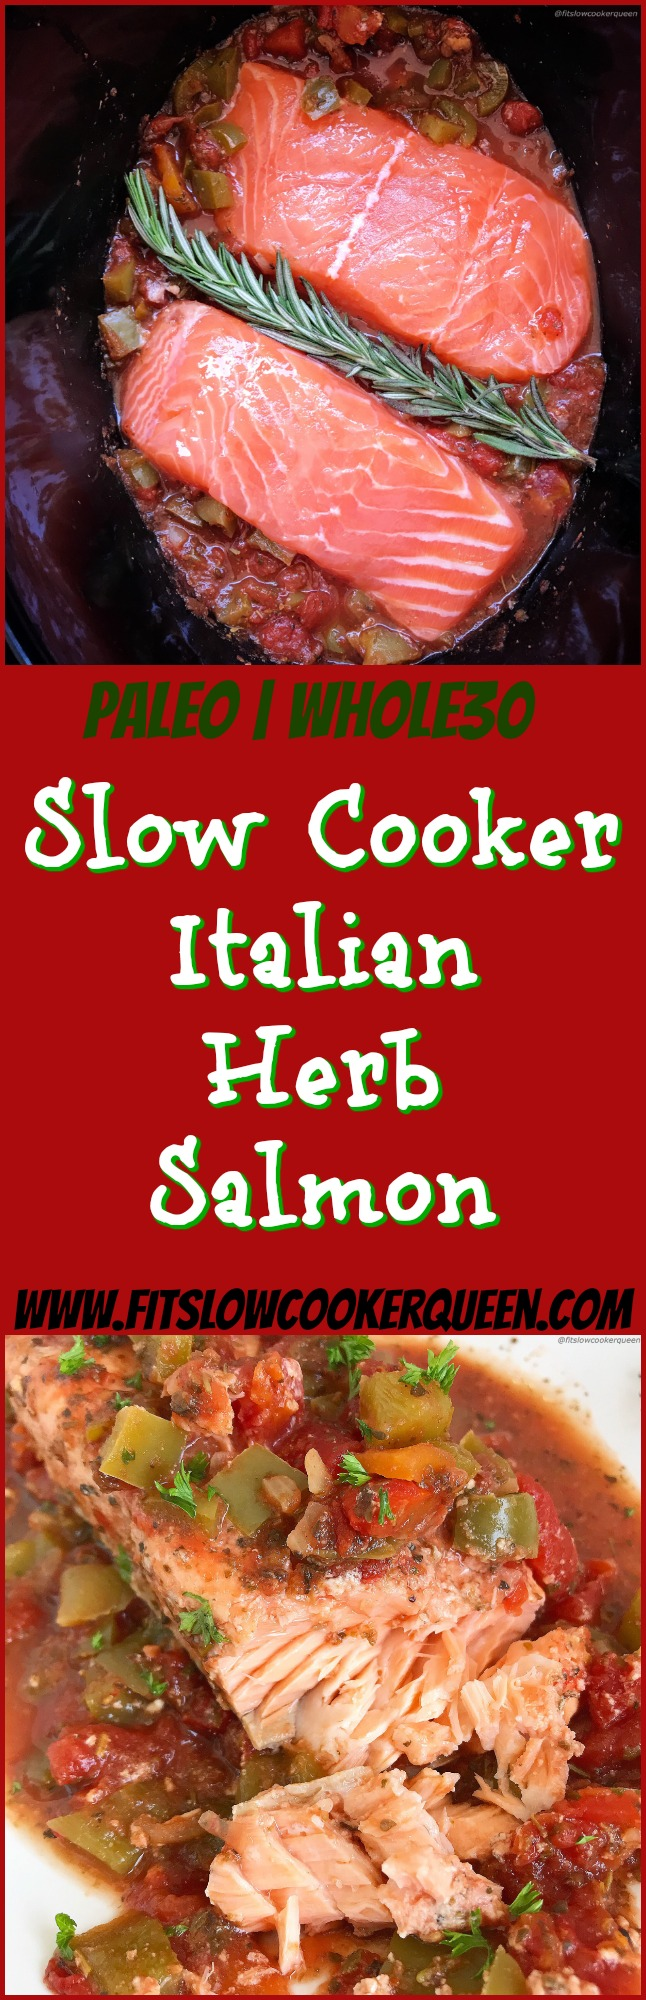 Of course you can cook salmon in the slow cooker! Italian seasonings, diced tomatoes, bell pepper, and fresh herbs cook with salmon in this healthy paleo and whole30 dish. Quick & easy, this slow cooker recipe is done in just a couple of hours.